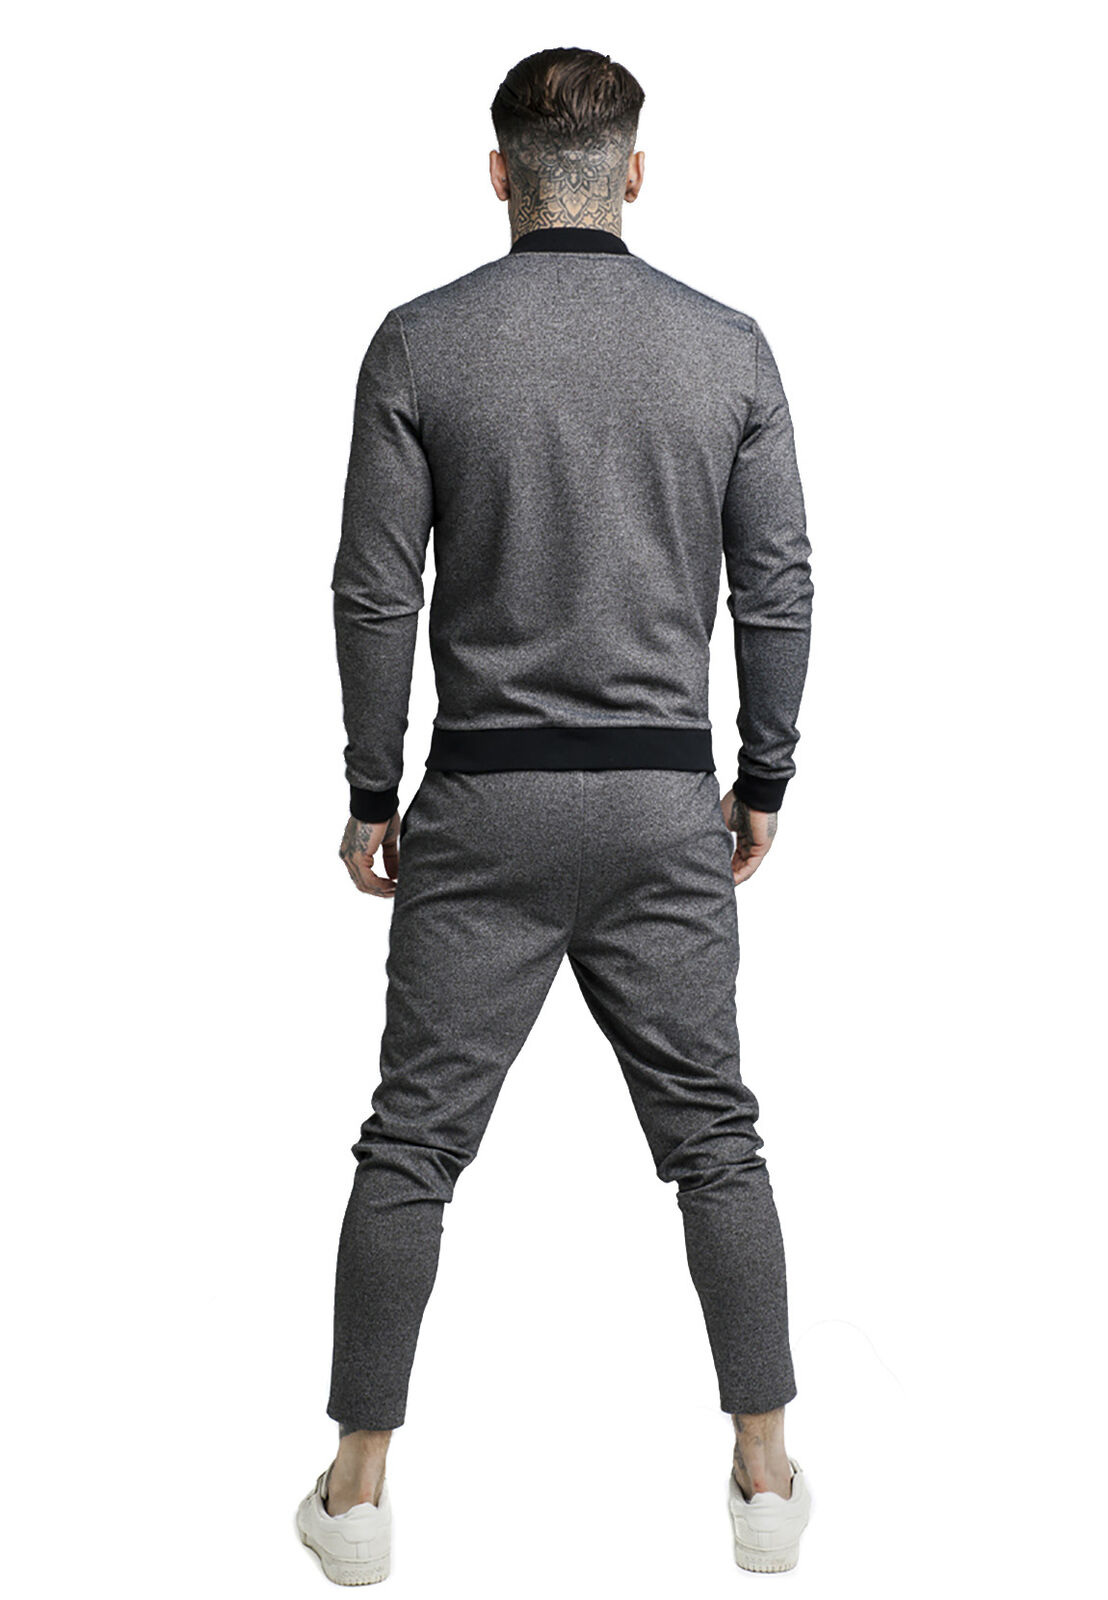 Siksilk Jogger Uomo Tech Tweed ULTRA cropped taped Pant Pant Pant ss-13985 GRIGIO grigio 949d1a